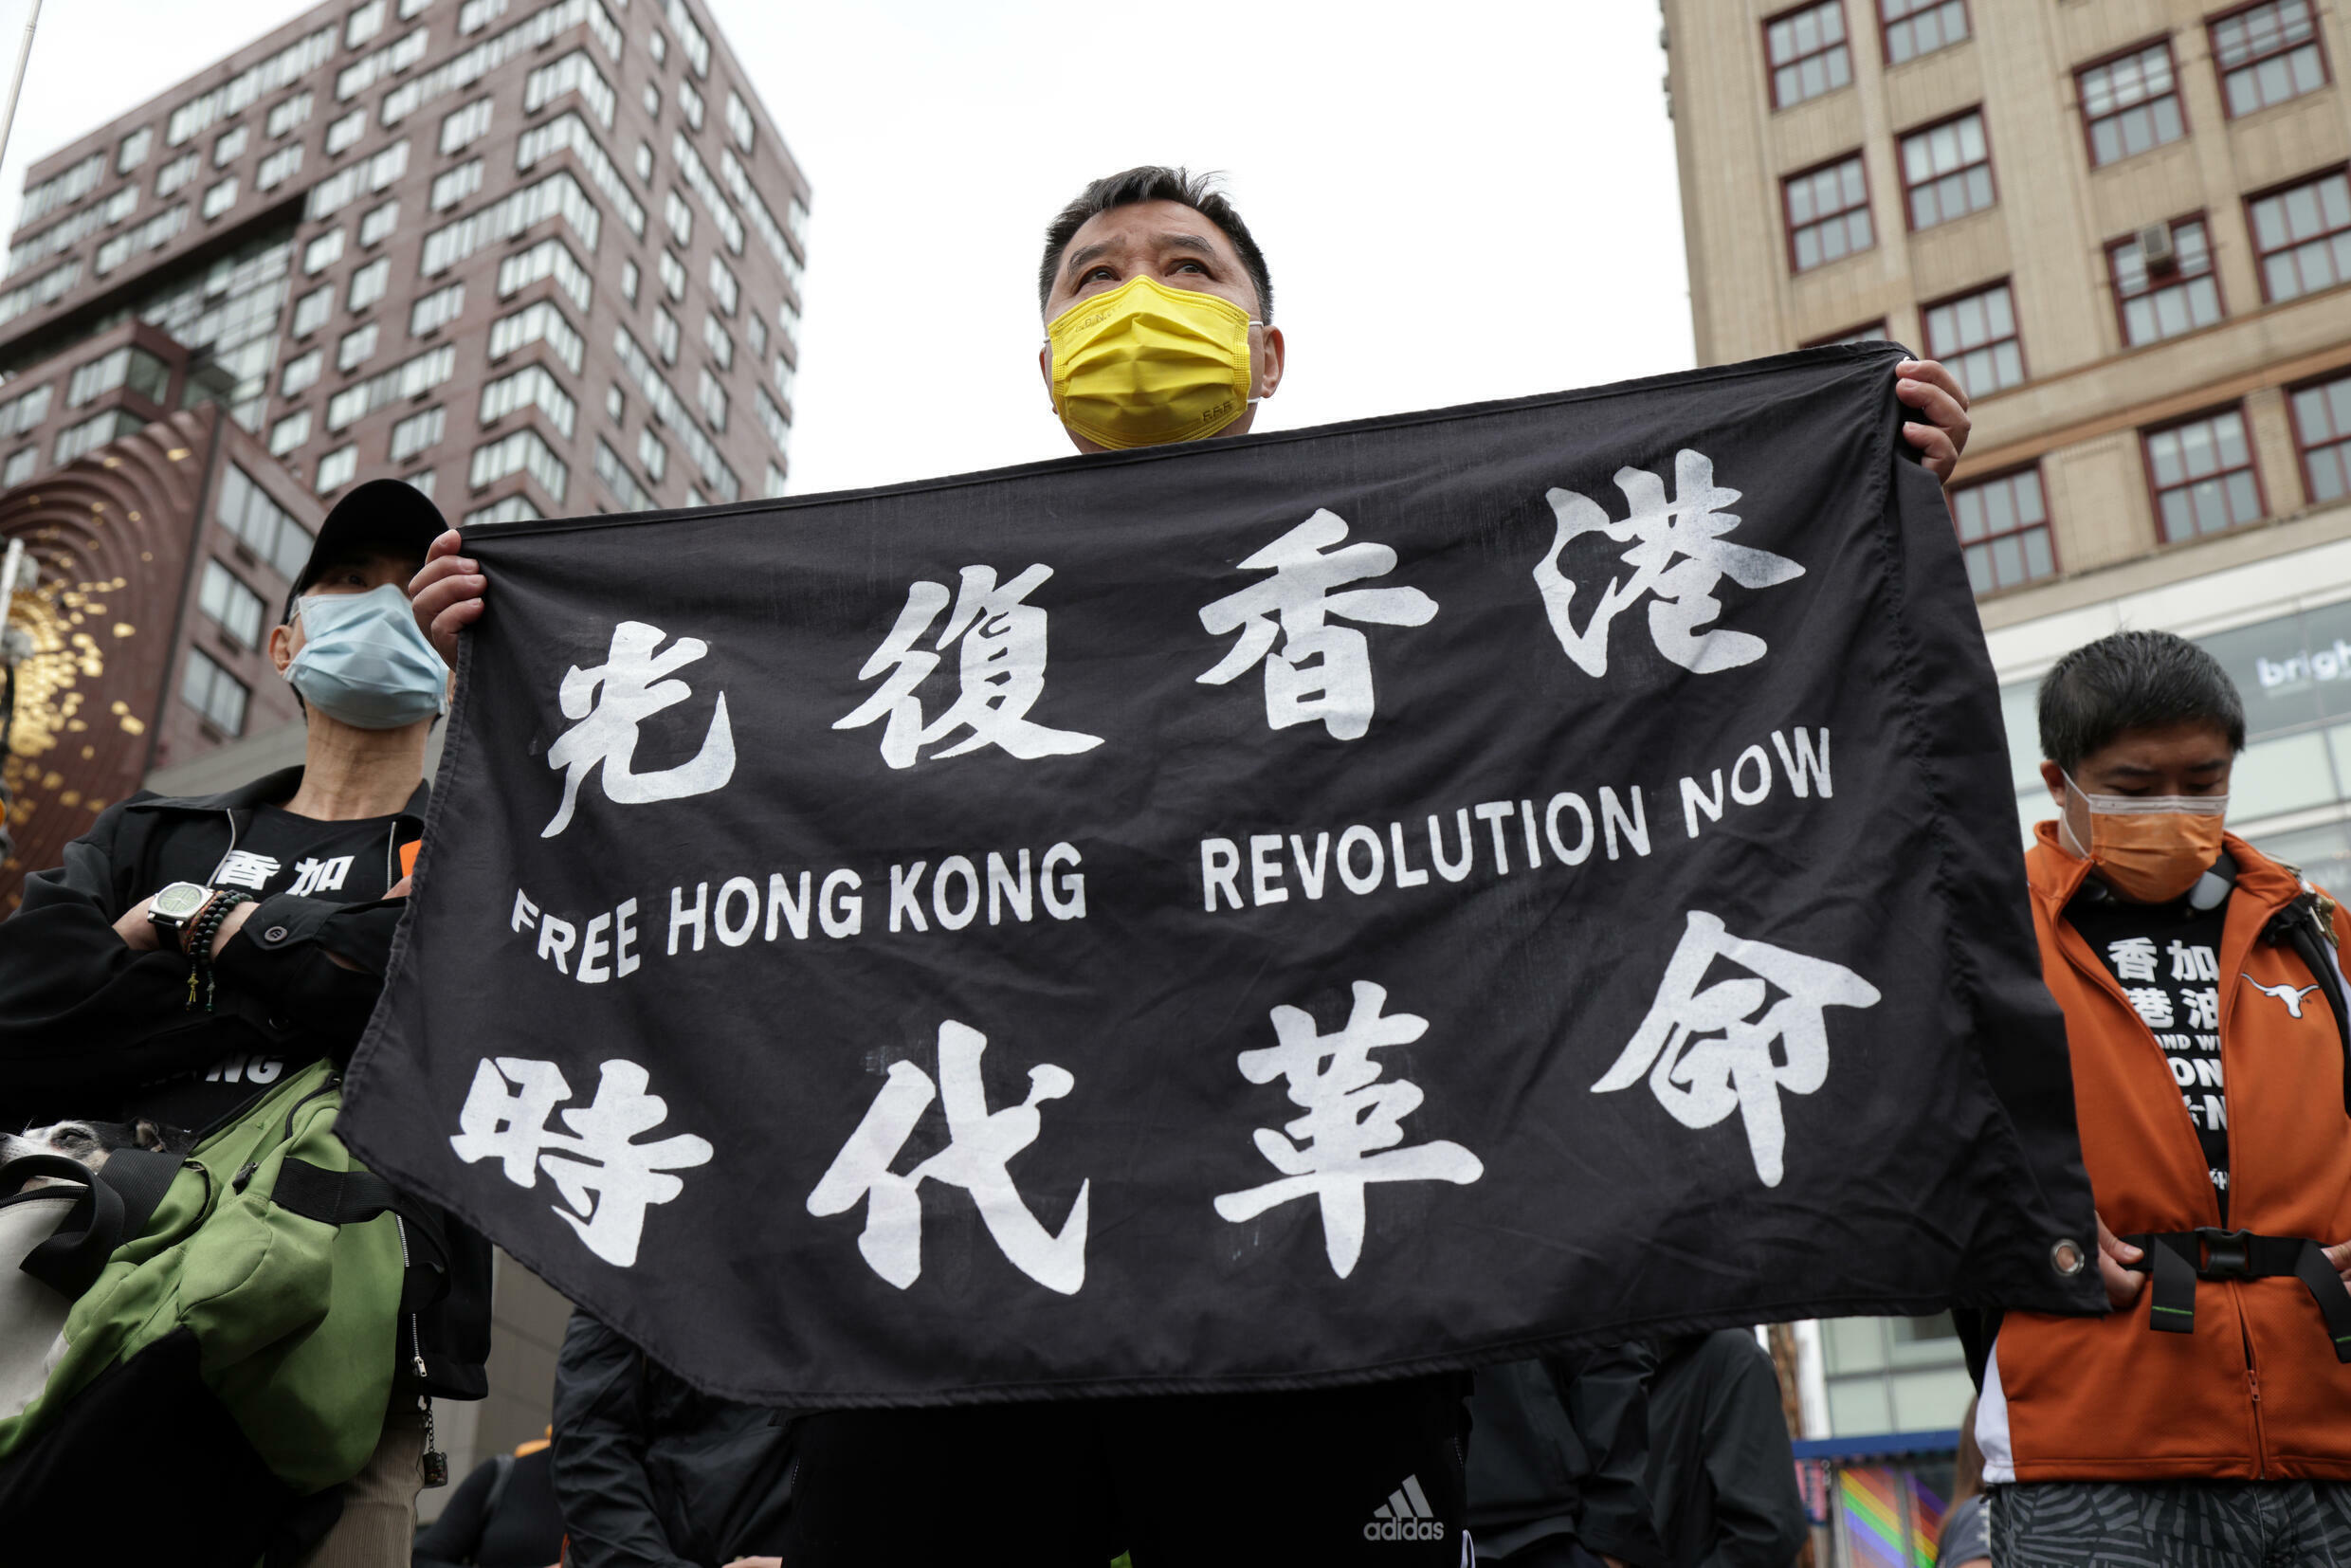 President Joe Biden's decision allows Hong Kong residents currently in the United States, such as these Hong Kongers protesting for democracy in New York in June 2021, to remain in the country for 18 months and to be allowed to work